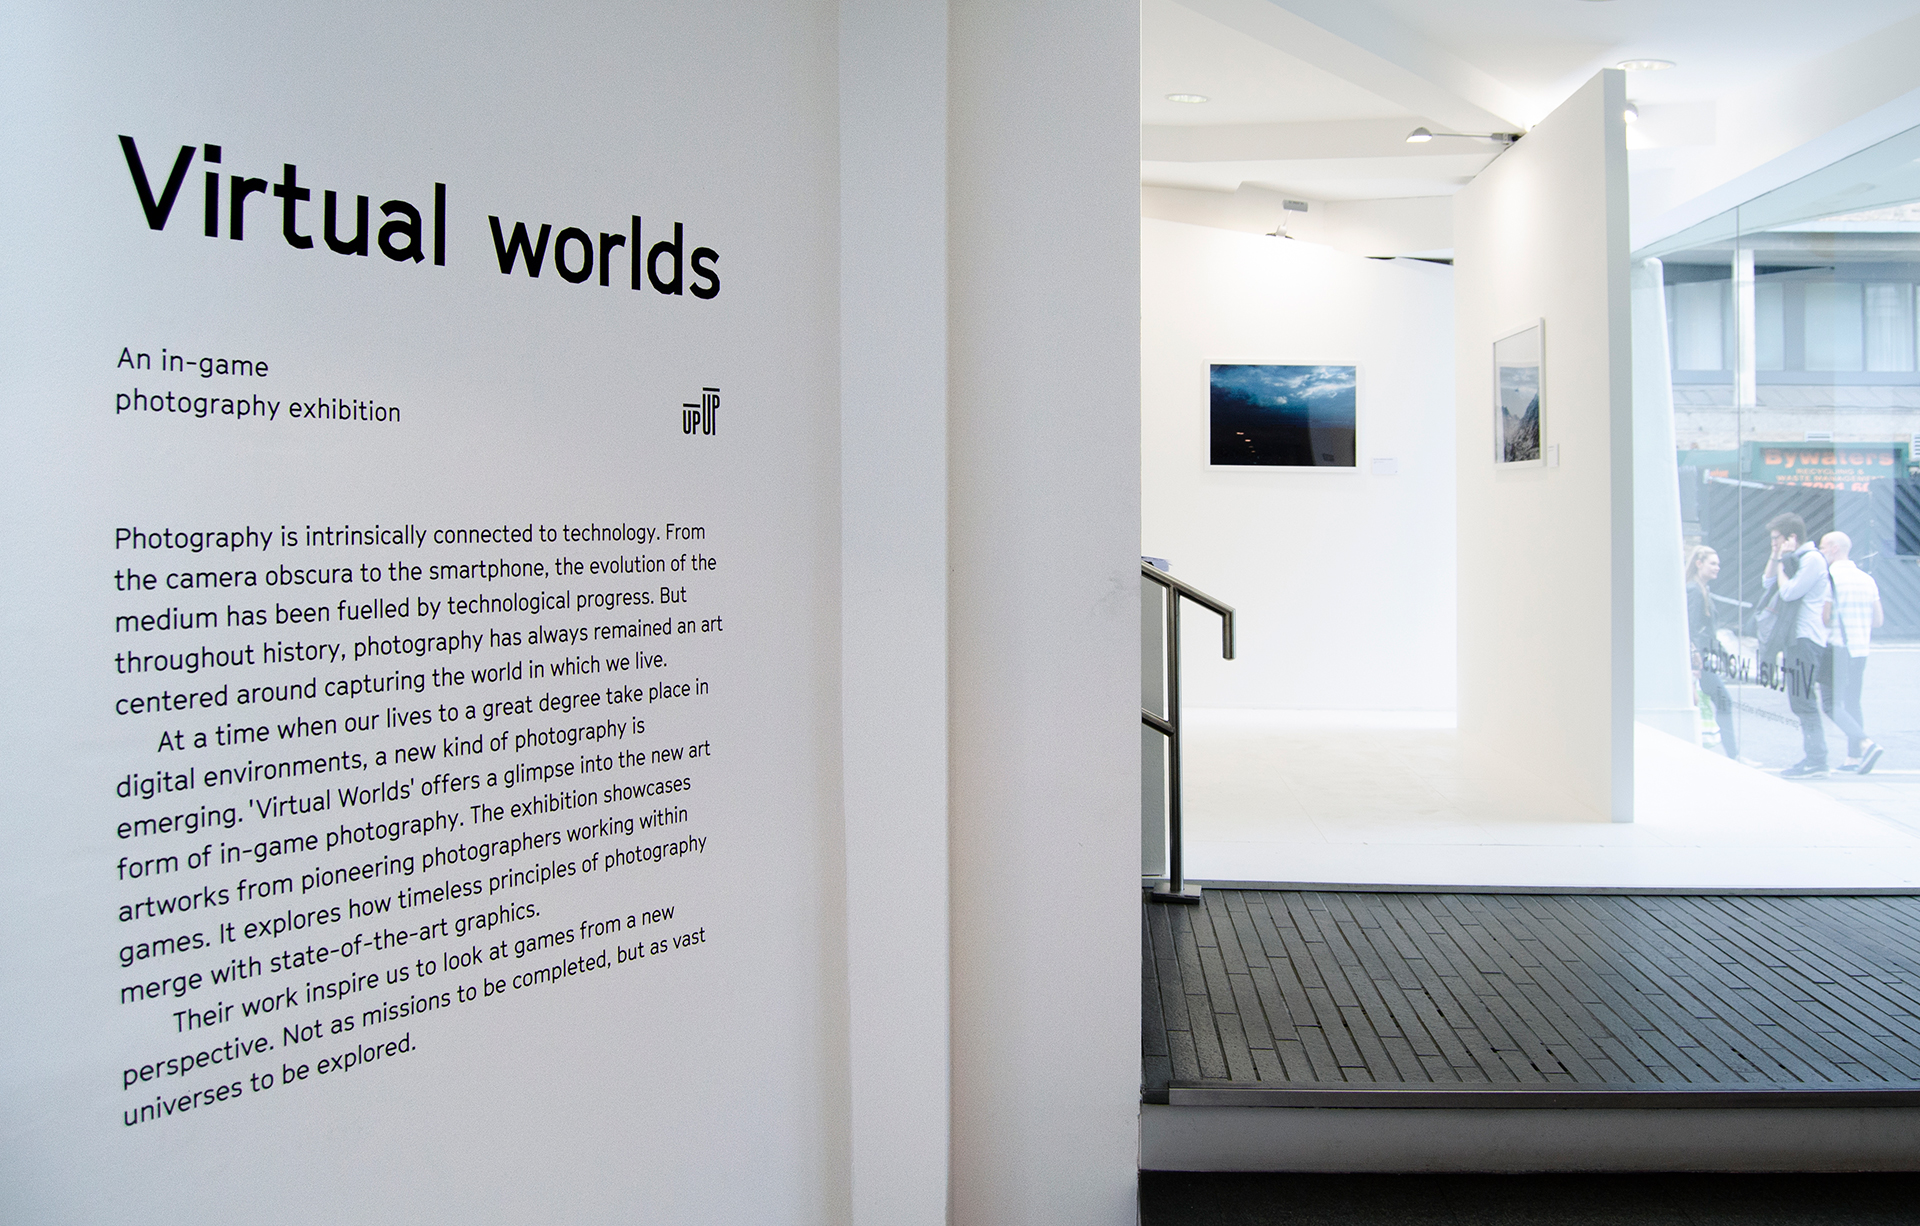 Exhibition at 'Virtual Worlds' for McCann London at the Up Up Gallery, London.